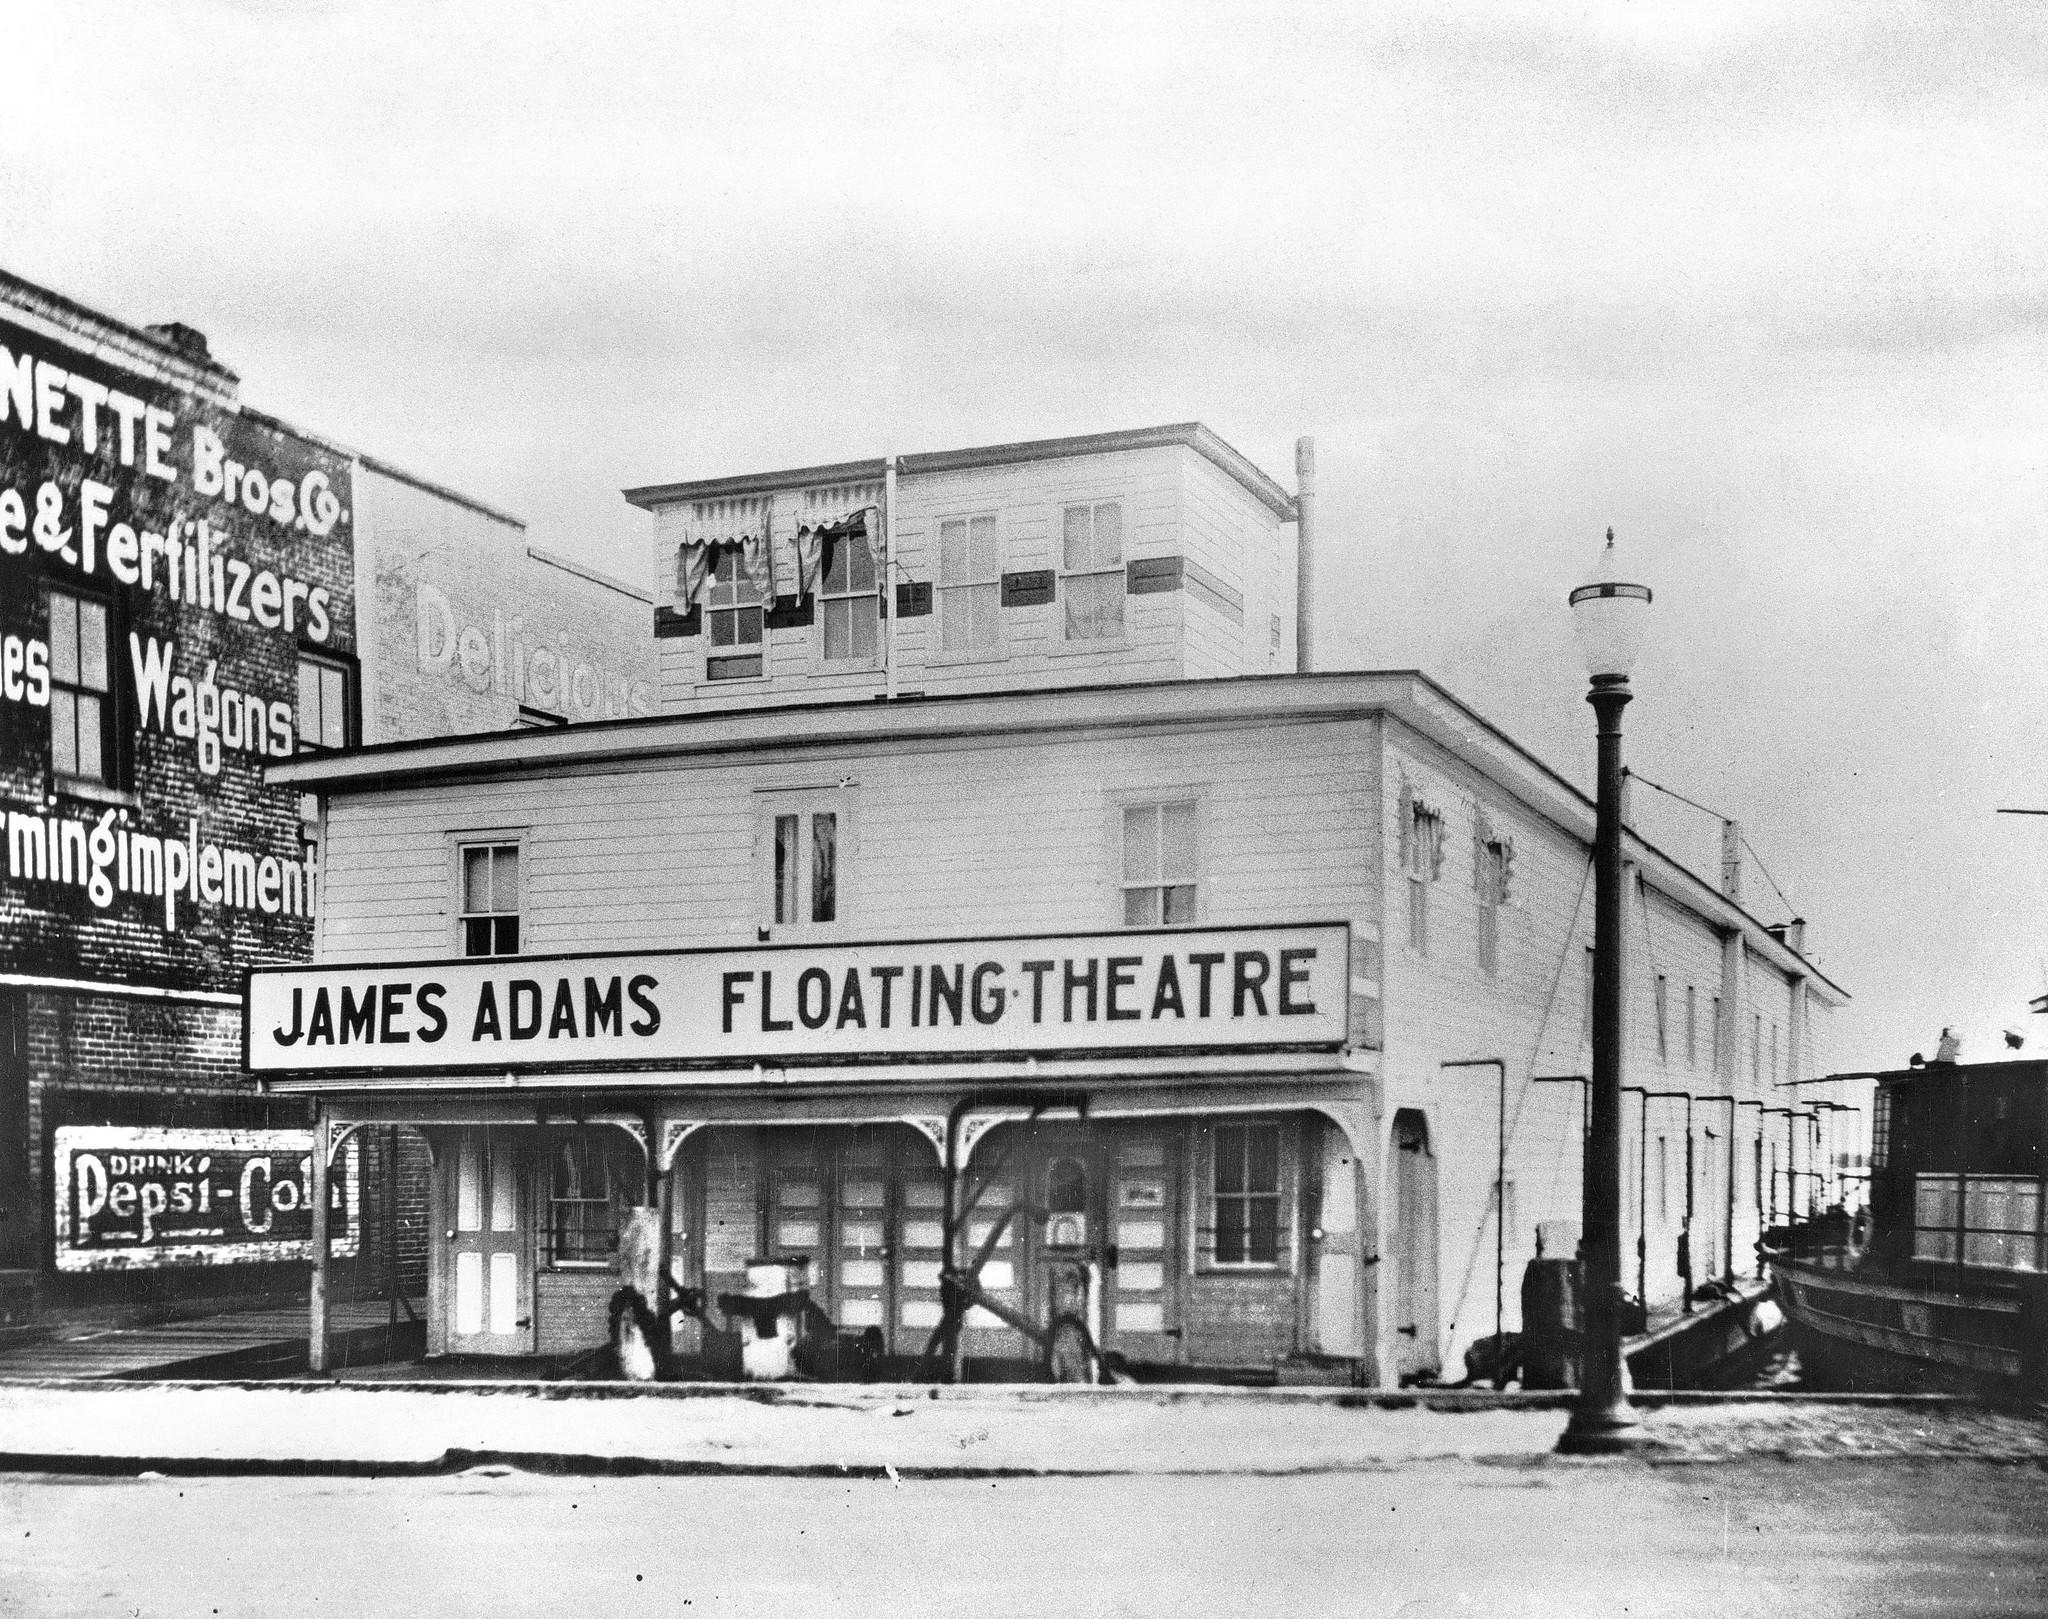 The James Adams Floating Theatre toured the waterfront towns of North Carolina, Virginia and Maryland for 37 weeks each year beginning in 1914. Its 14-inch draft enabled it to pull right up to the town docks even in places located on shallow rivers and creeks.